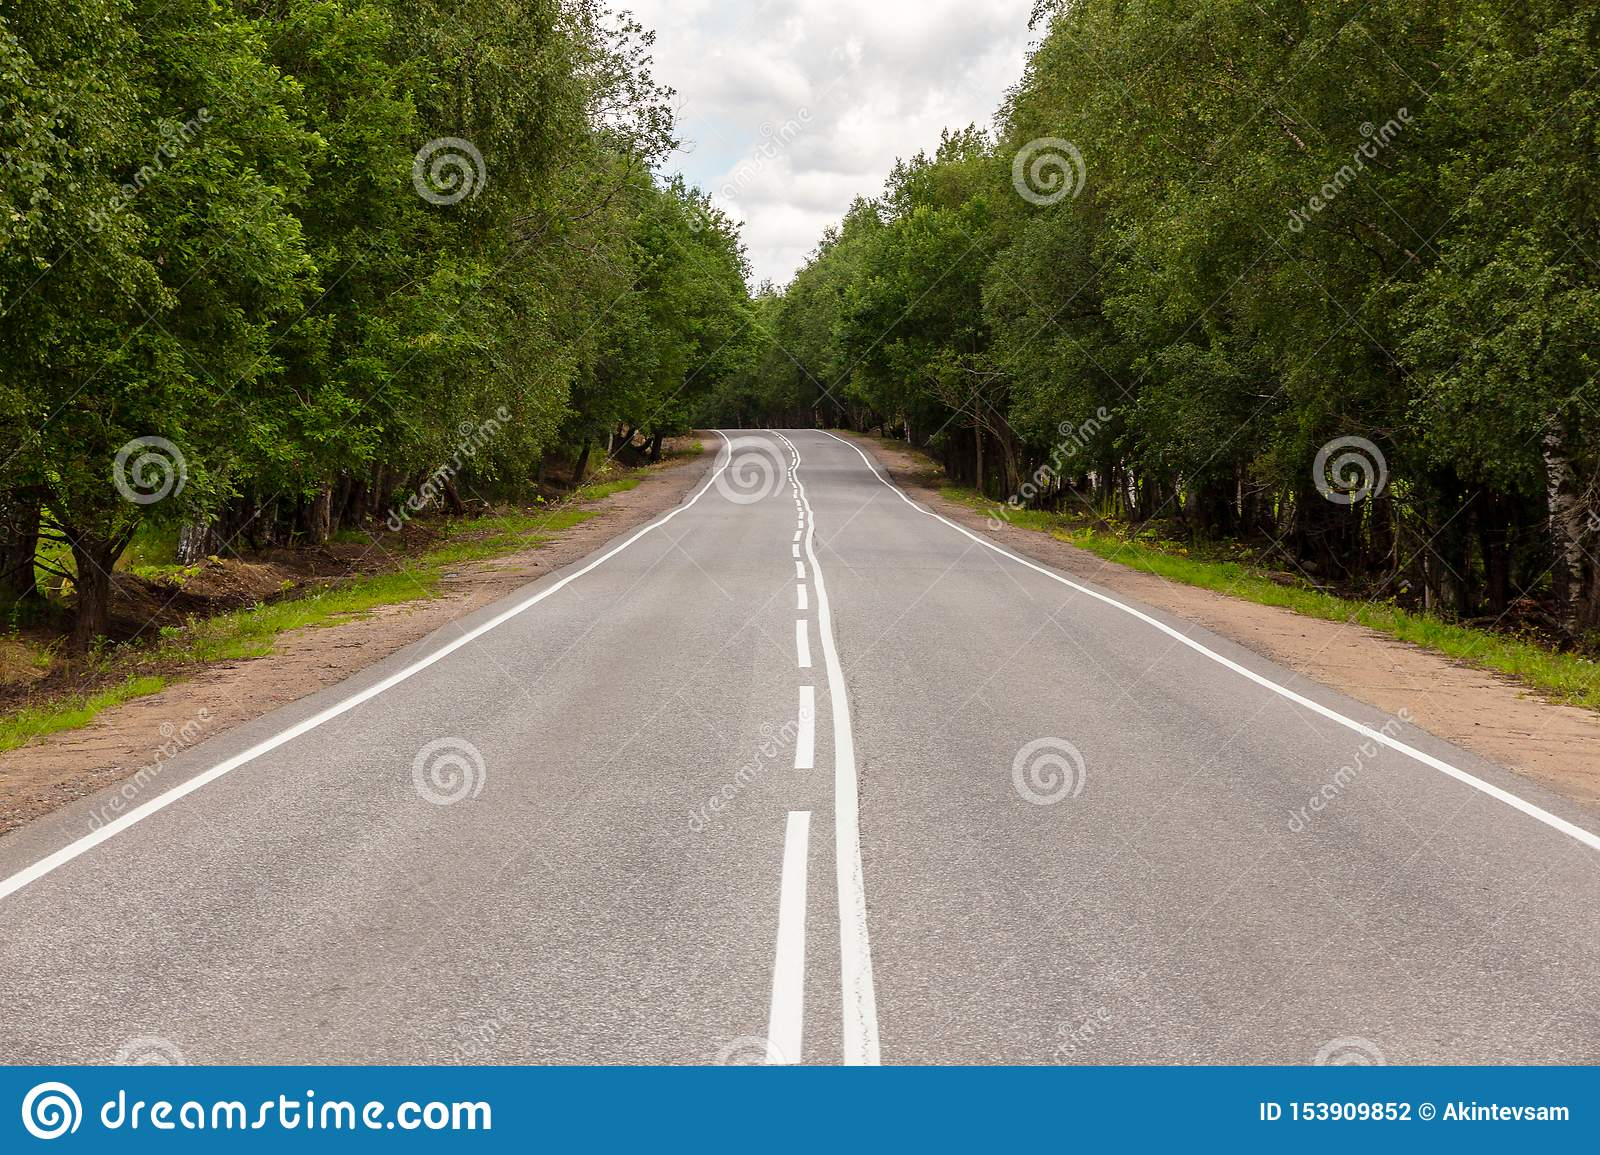 Road with white markings and green trees on the side of the road. View from the middle of the highway